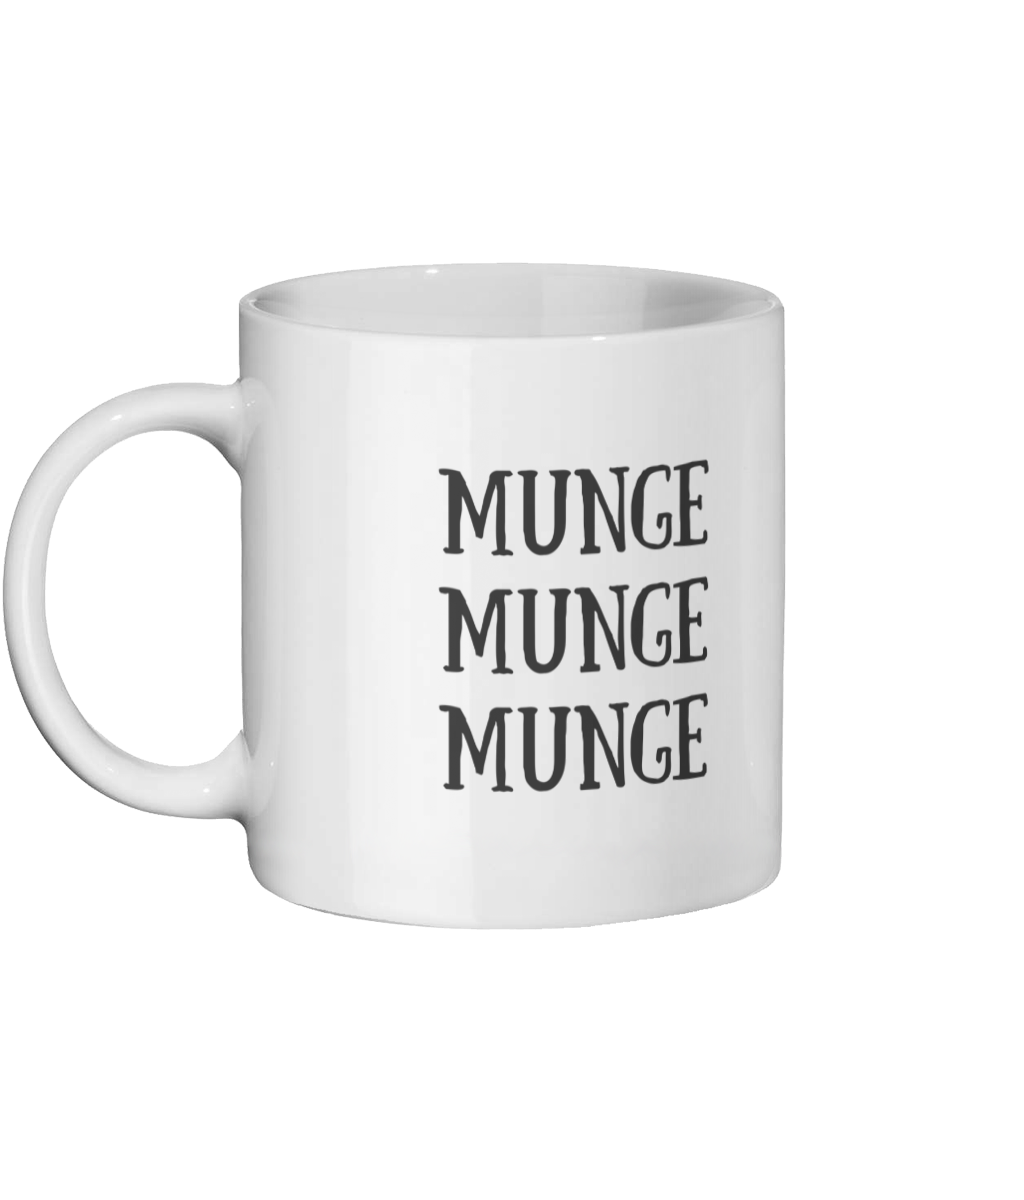 MUNGE MUNGE MUNGE MUG Left-side